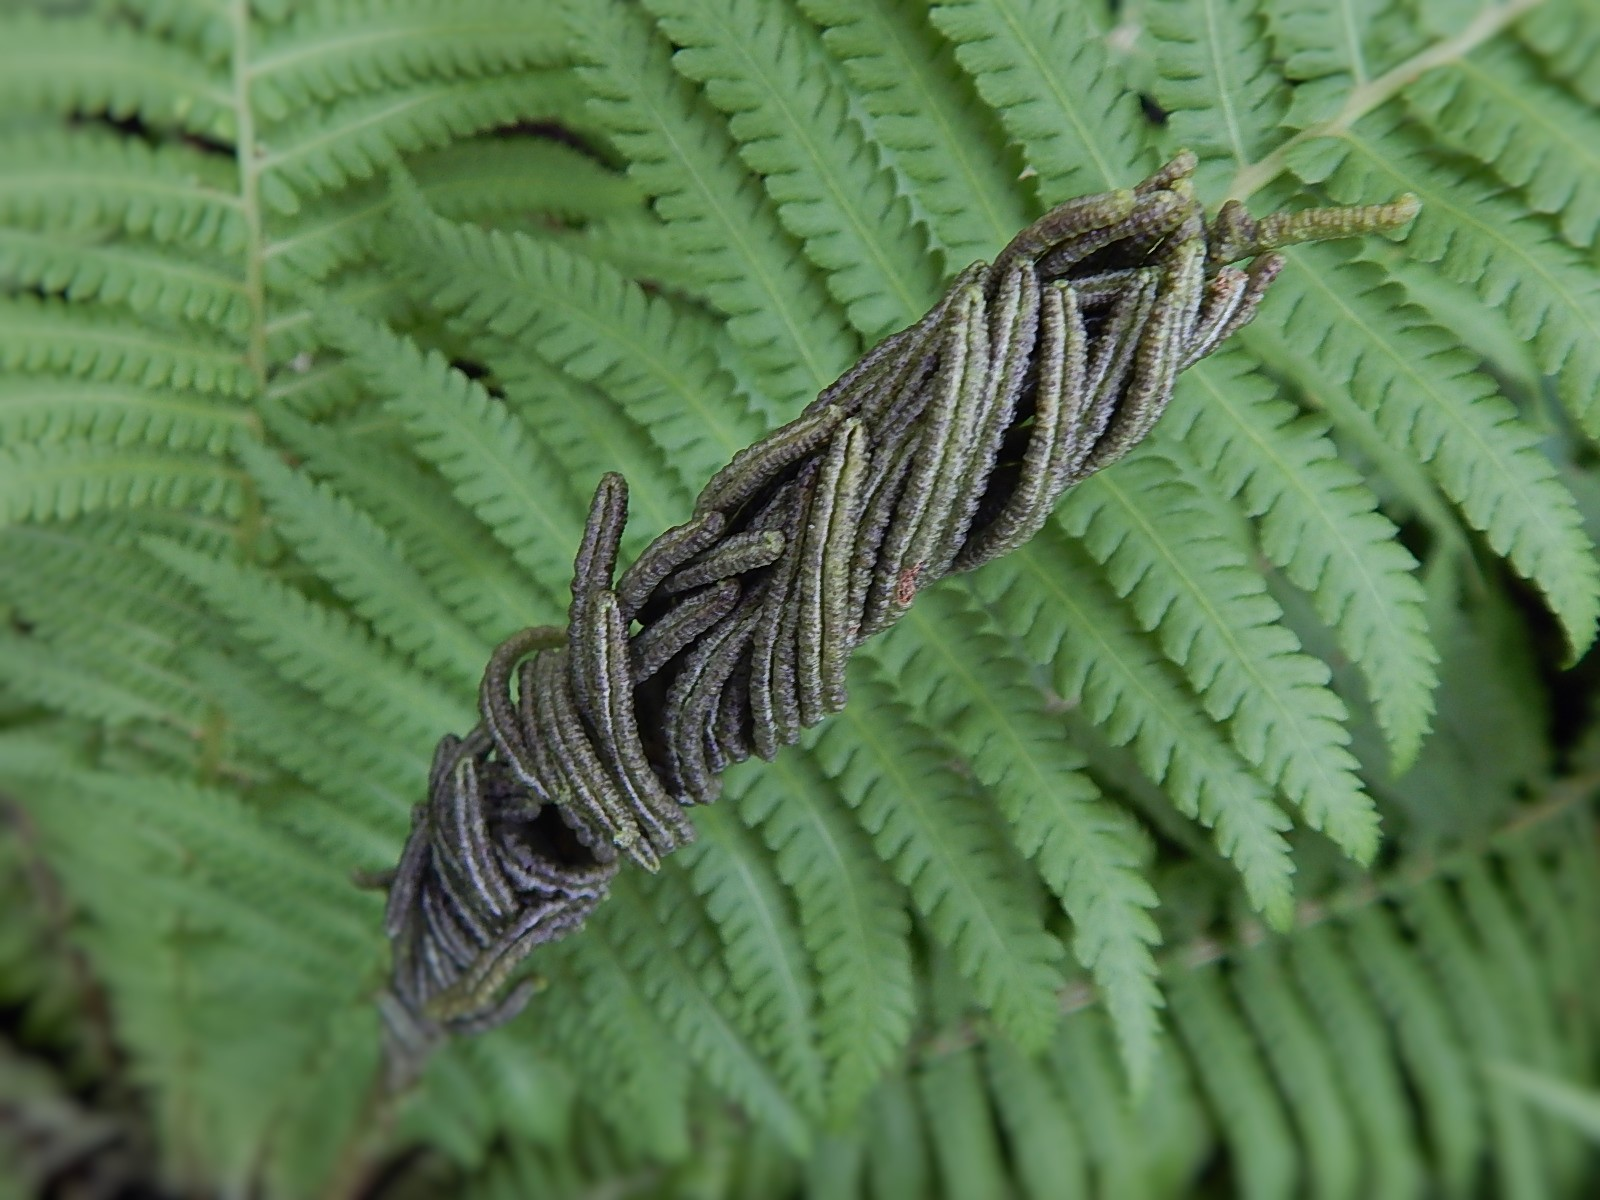 fern fertile frond close up